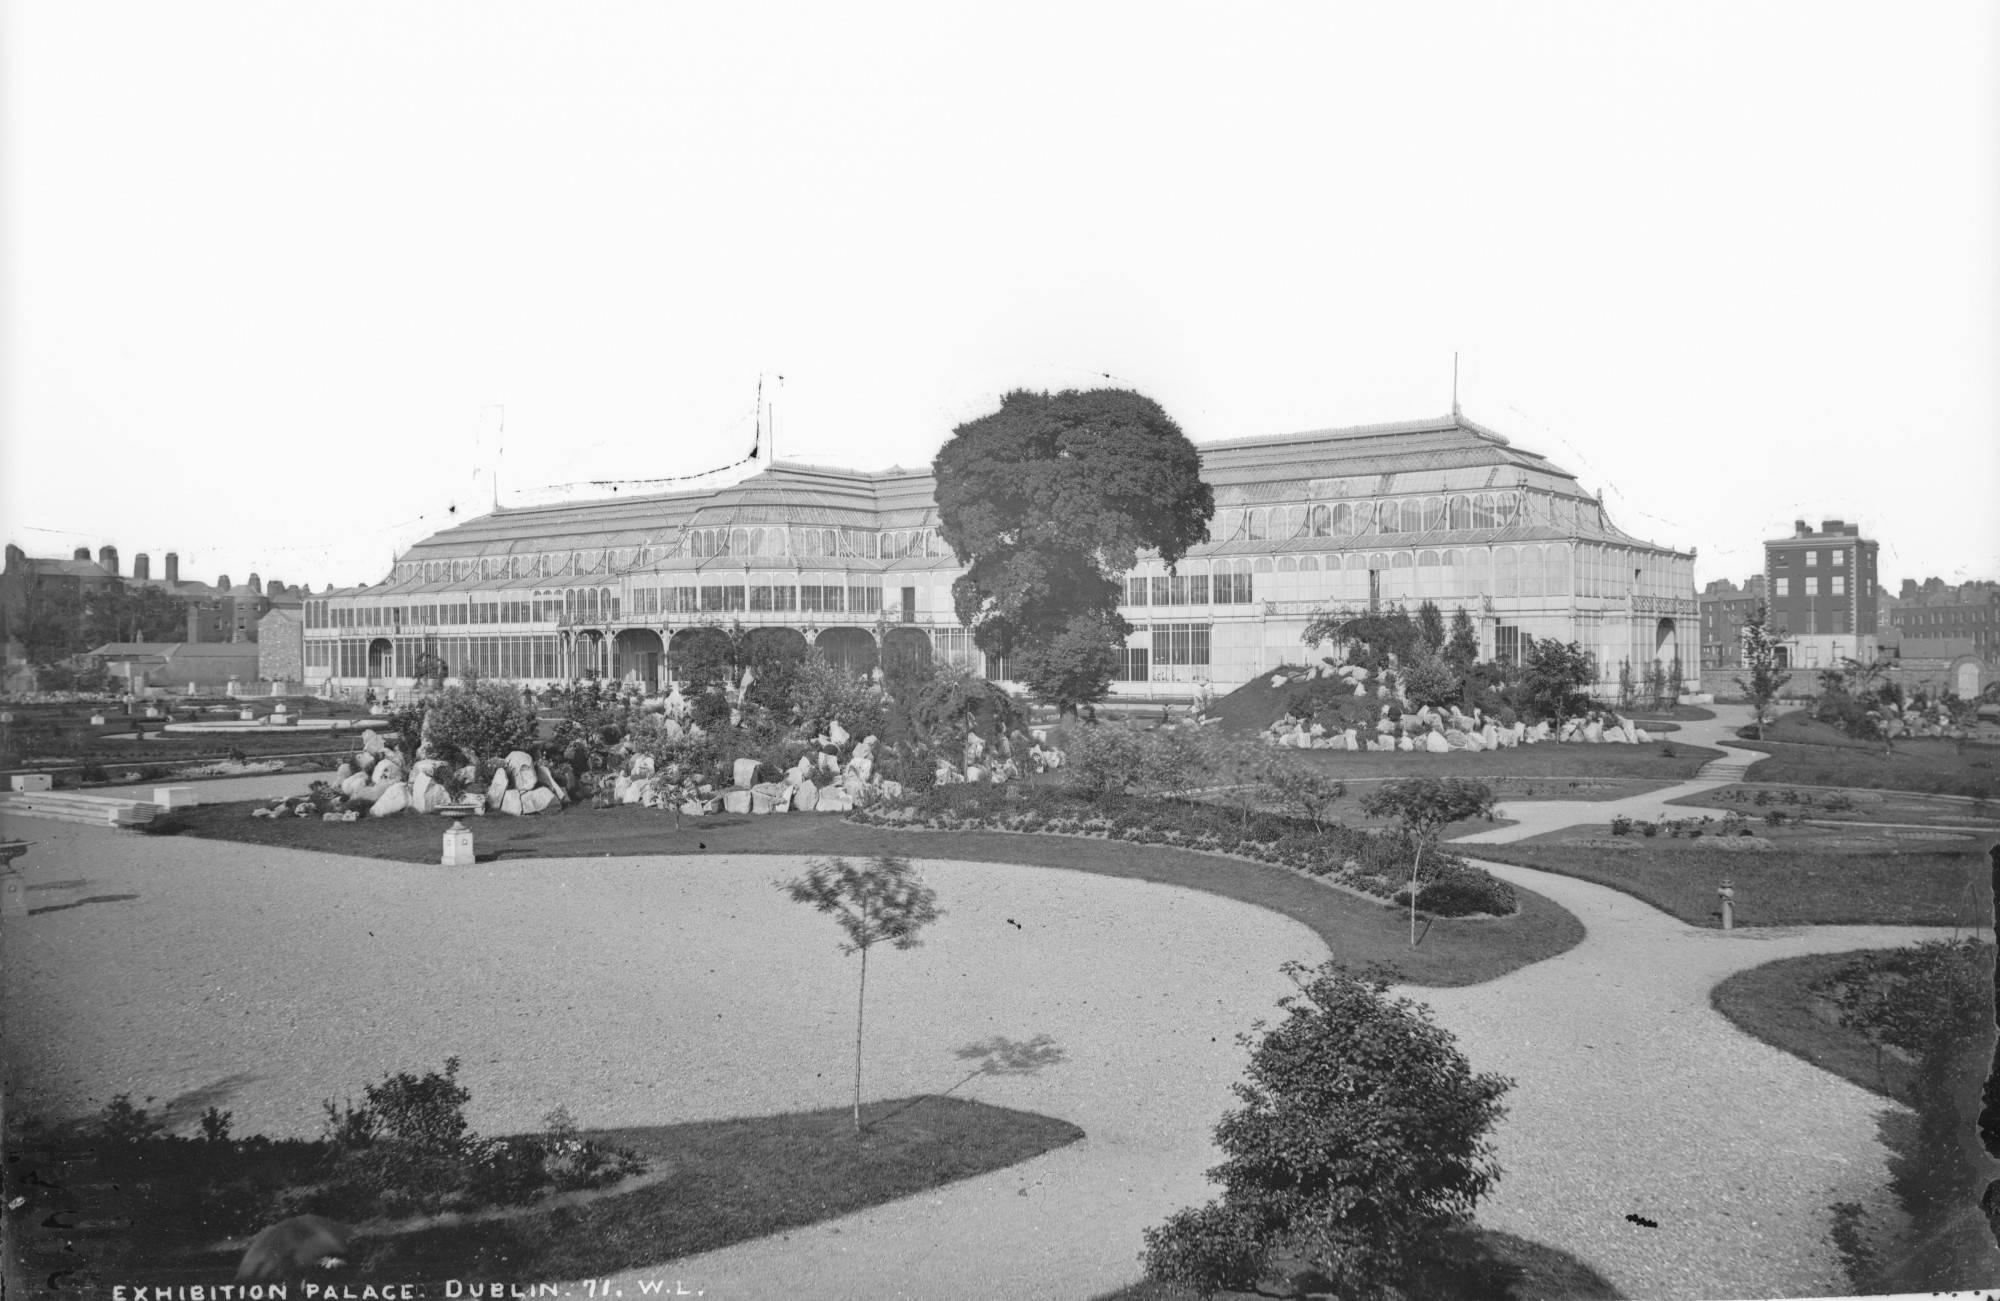 The Exhibition Palace and Garden, the Lawrence Collection. National Library of Ireland.